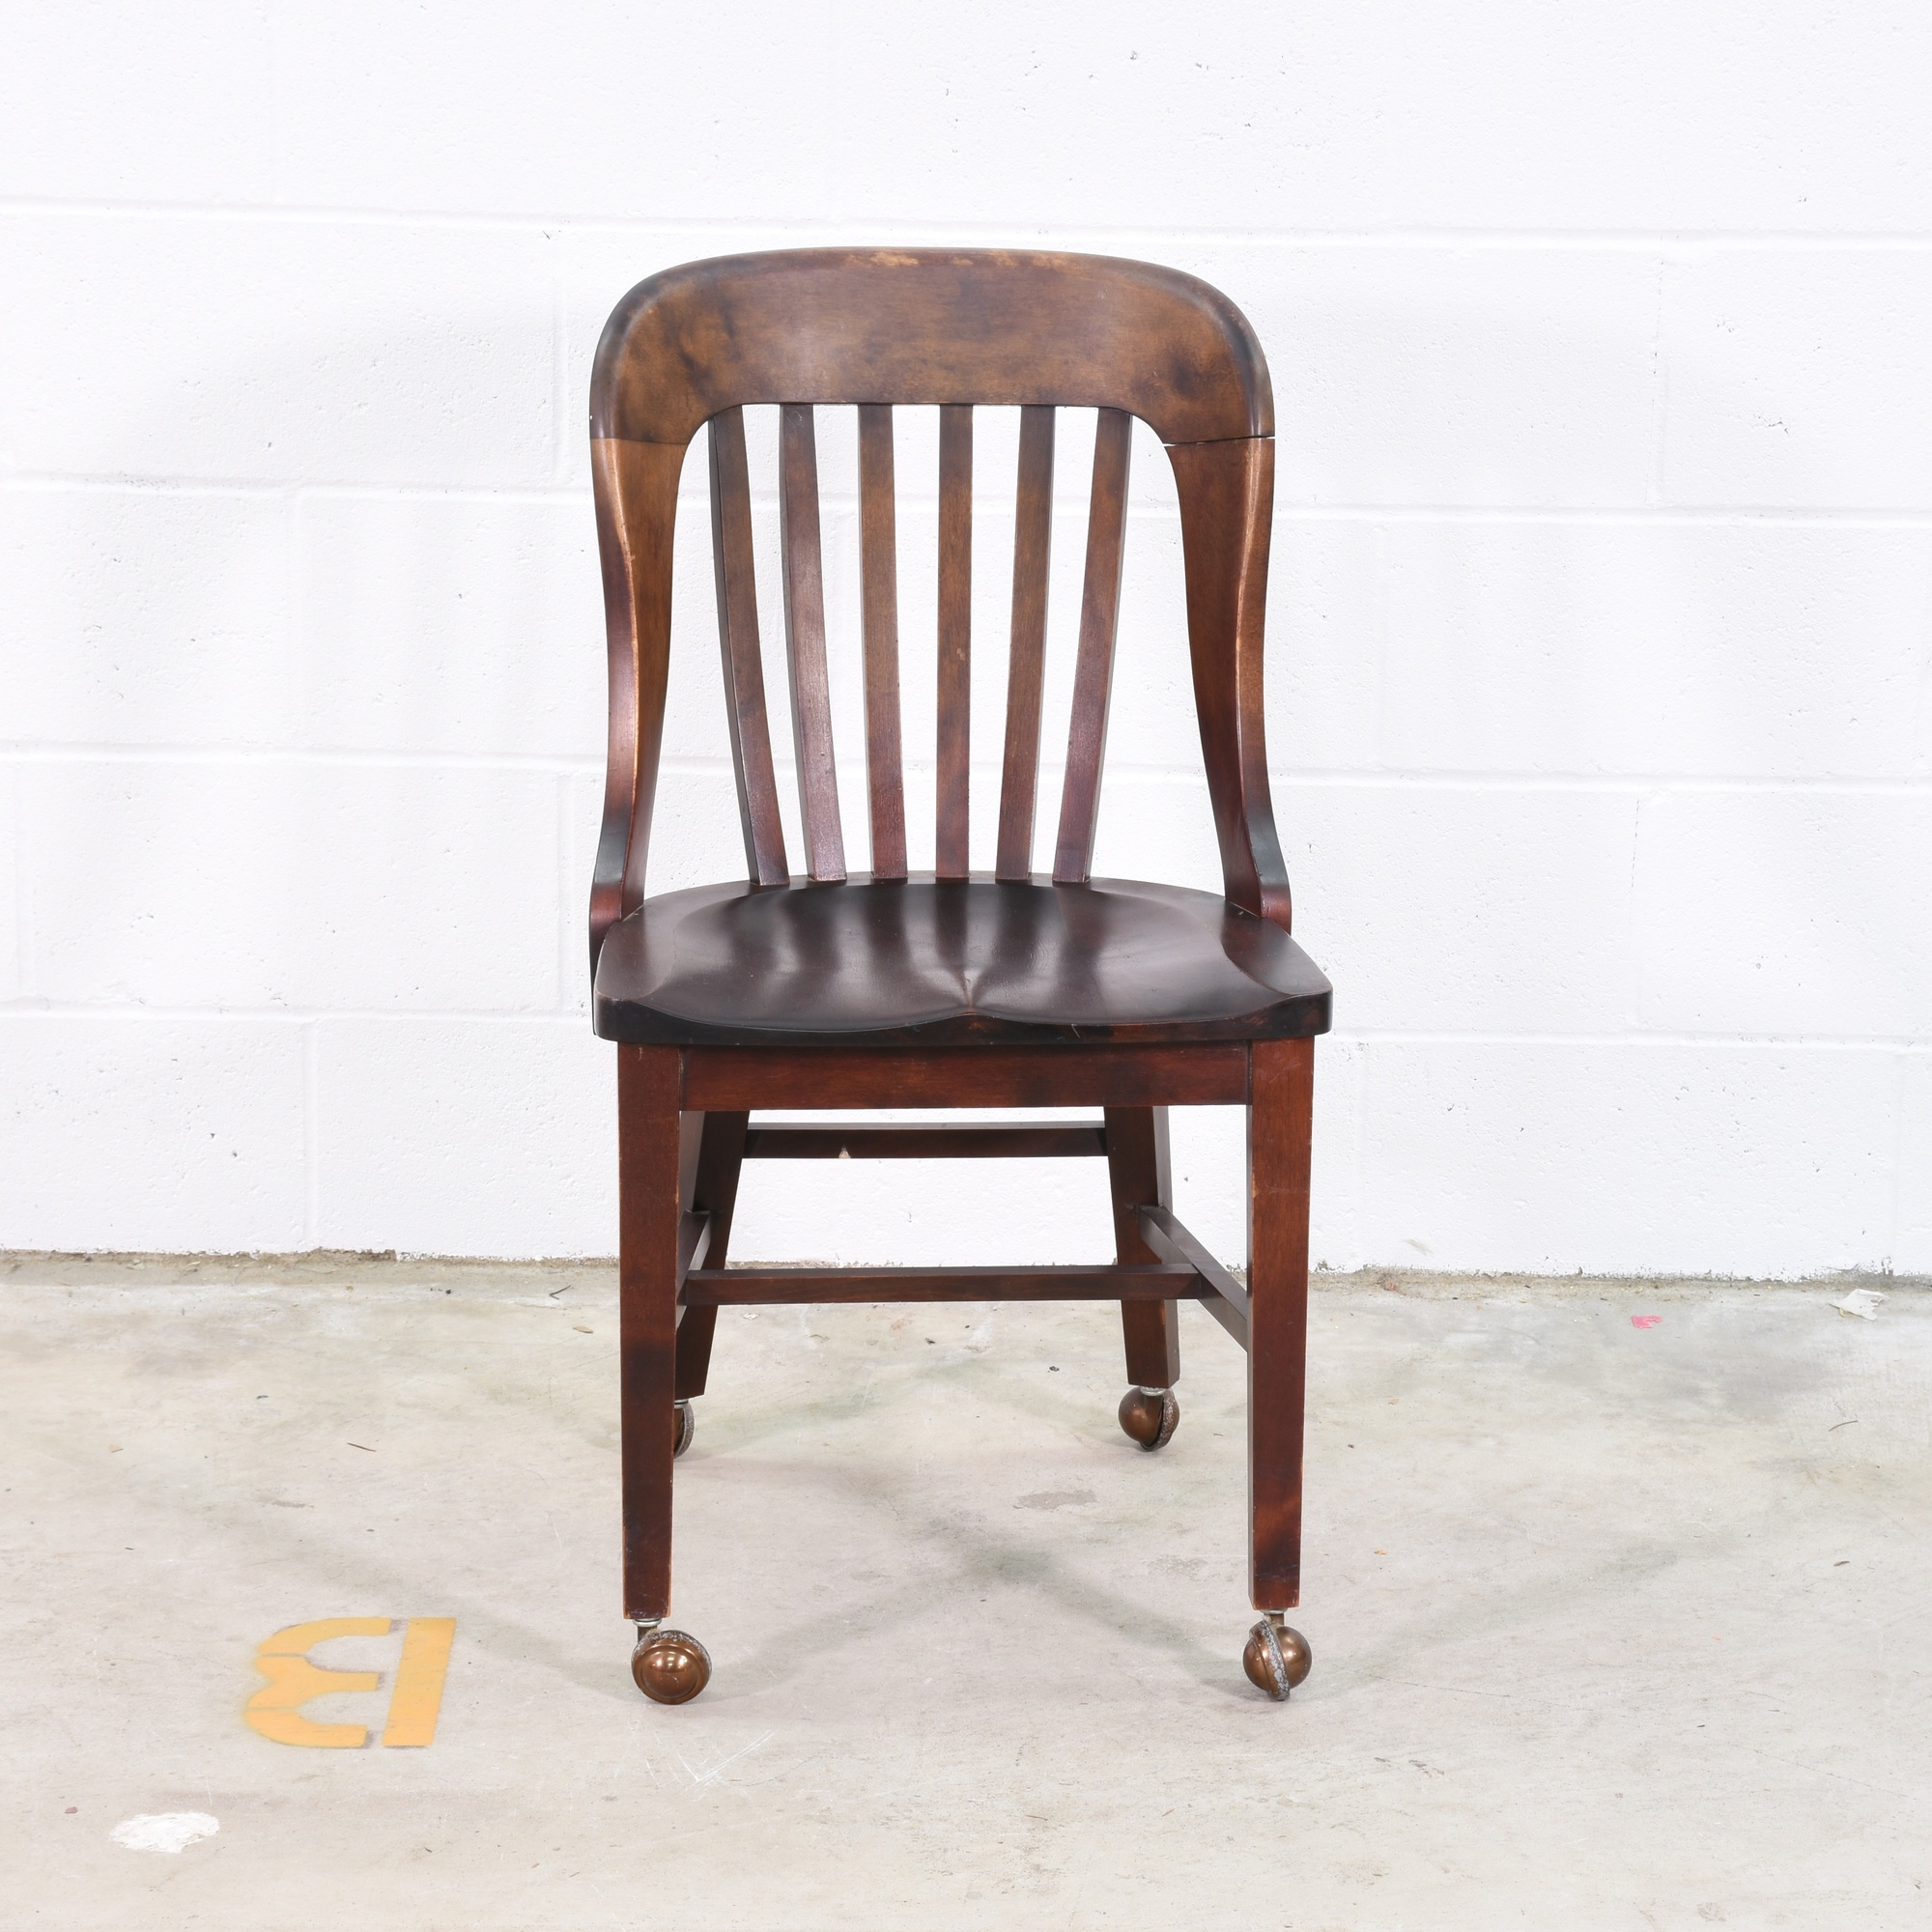 Wooden Desk Chair W/ Wheels Loveseat Vintage Furniture San Diego . Full resolution  image, nominally Width 2000 Height 2000 pixels, image with #976C34.